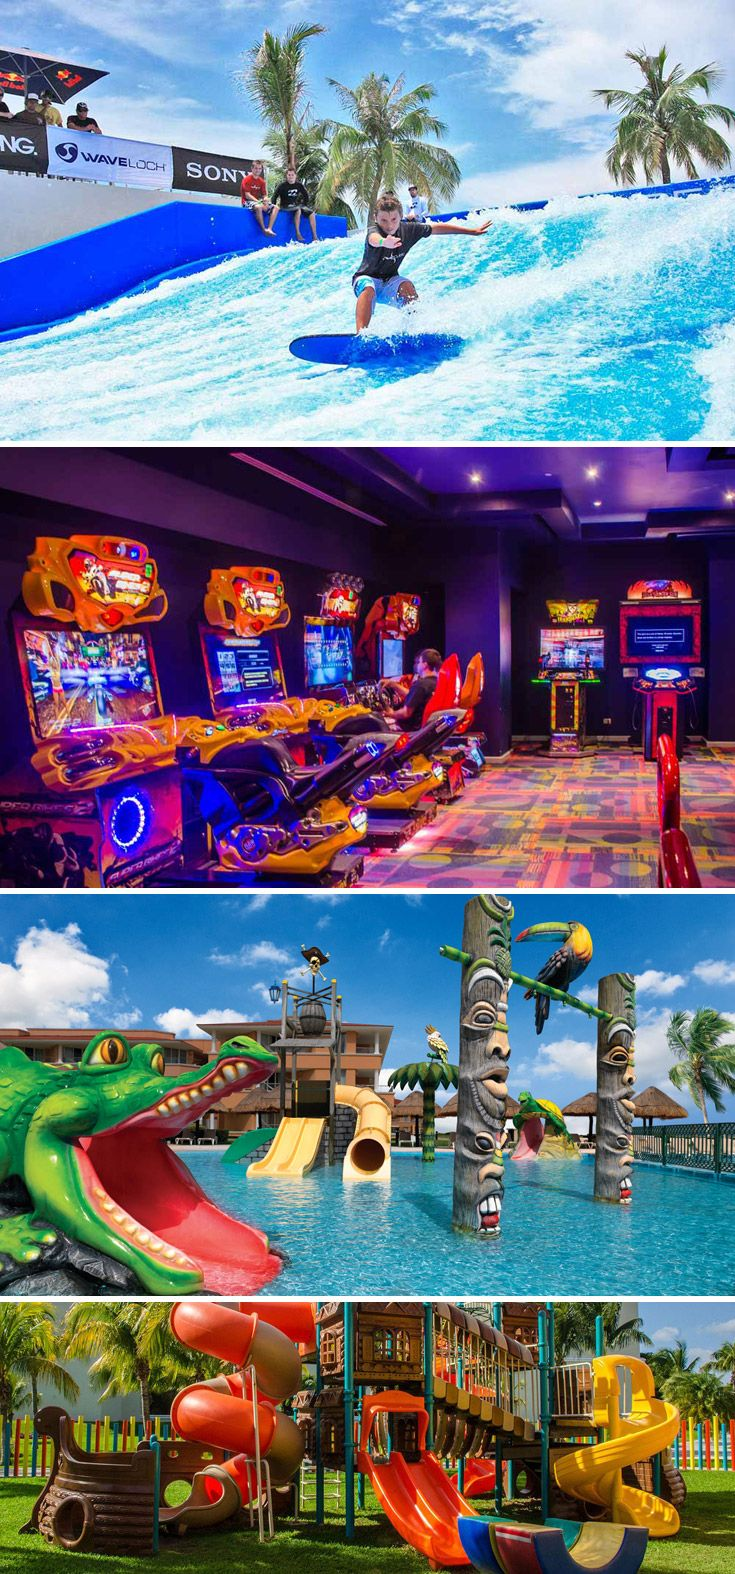 The Moon Palace Cancun offers activities for kids of all ages.  A kids club for children ages 4-12, the Wired Teen Lounge, and the Flowrider will keep your kids entertained!